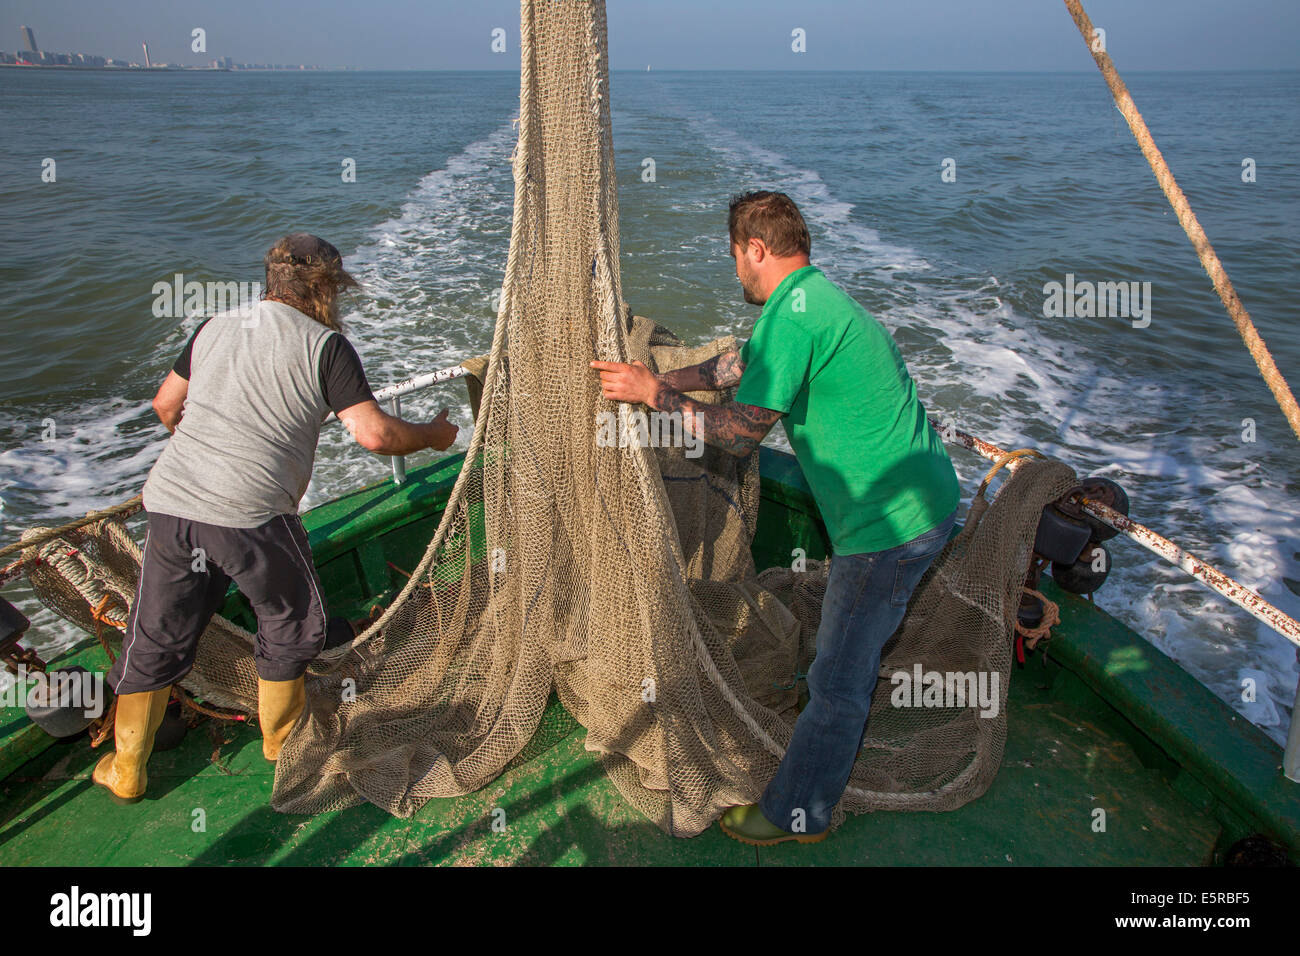 Fishermen preparing fish net on board of shrimp boat fishing for shrimps on the North Sea - Stock Image